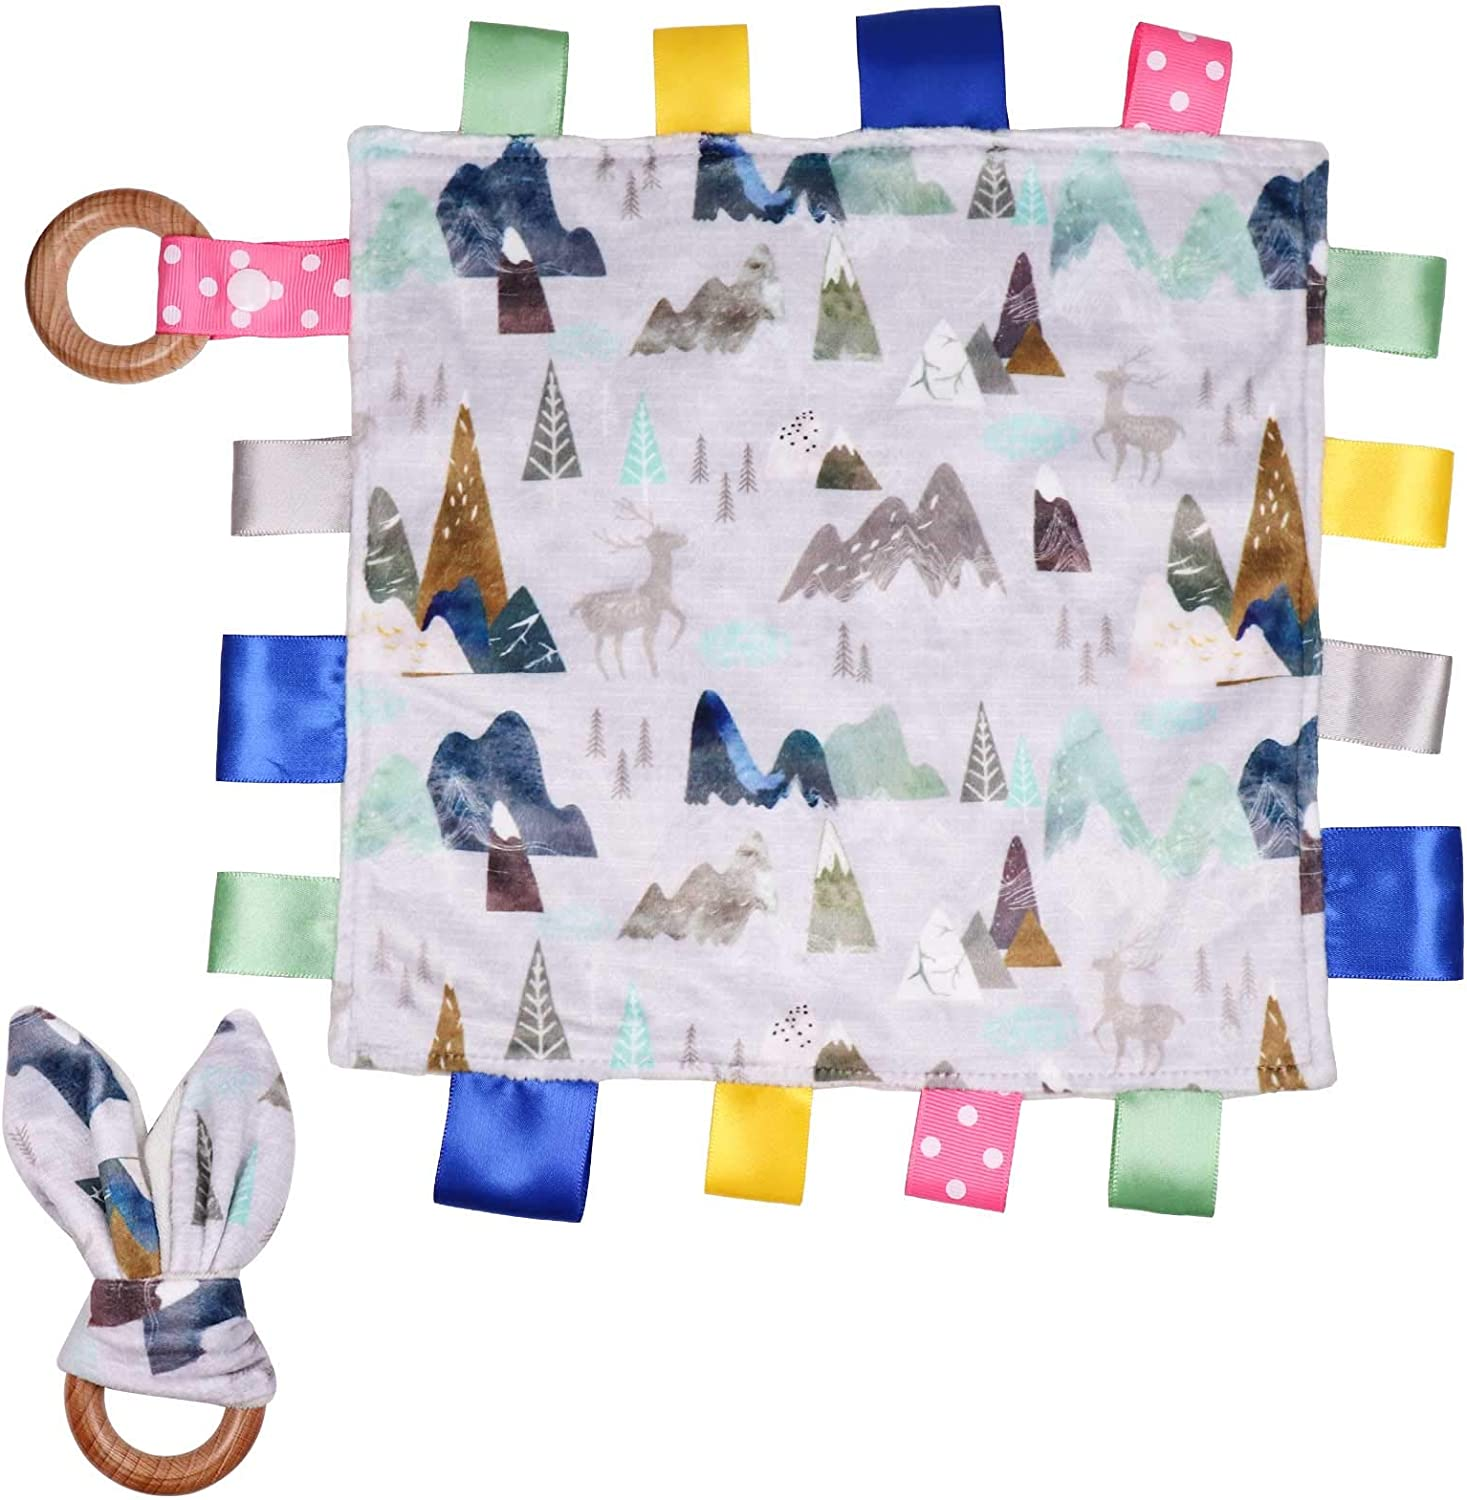 Toddlers Taggy Blanket Comforter Towel Grey Mountain Mini Sensory Minky Security Blanket Bunny Ear Teething Ring Lovey for Babies Newborn 0-36 Months/… Adventure Baby Taggies Blanket for Boys Girls